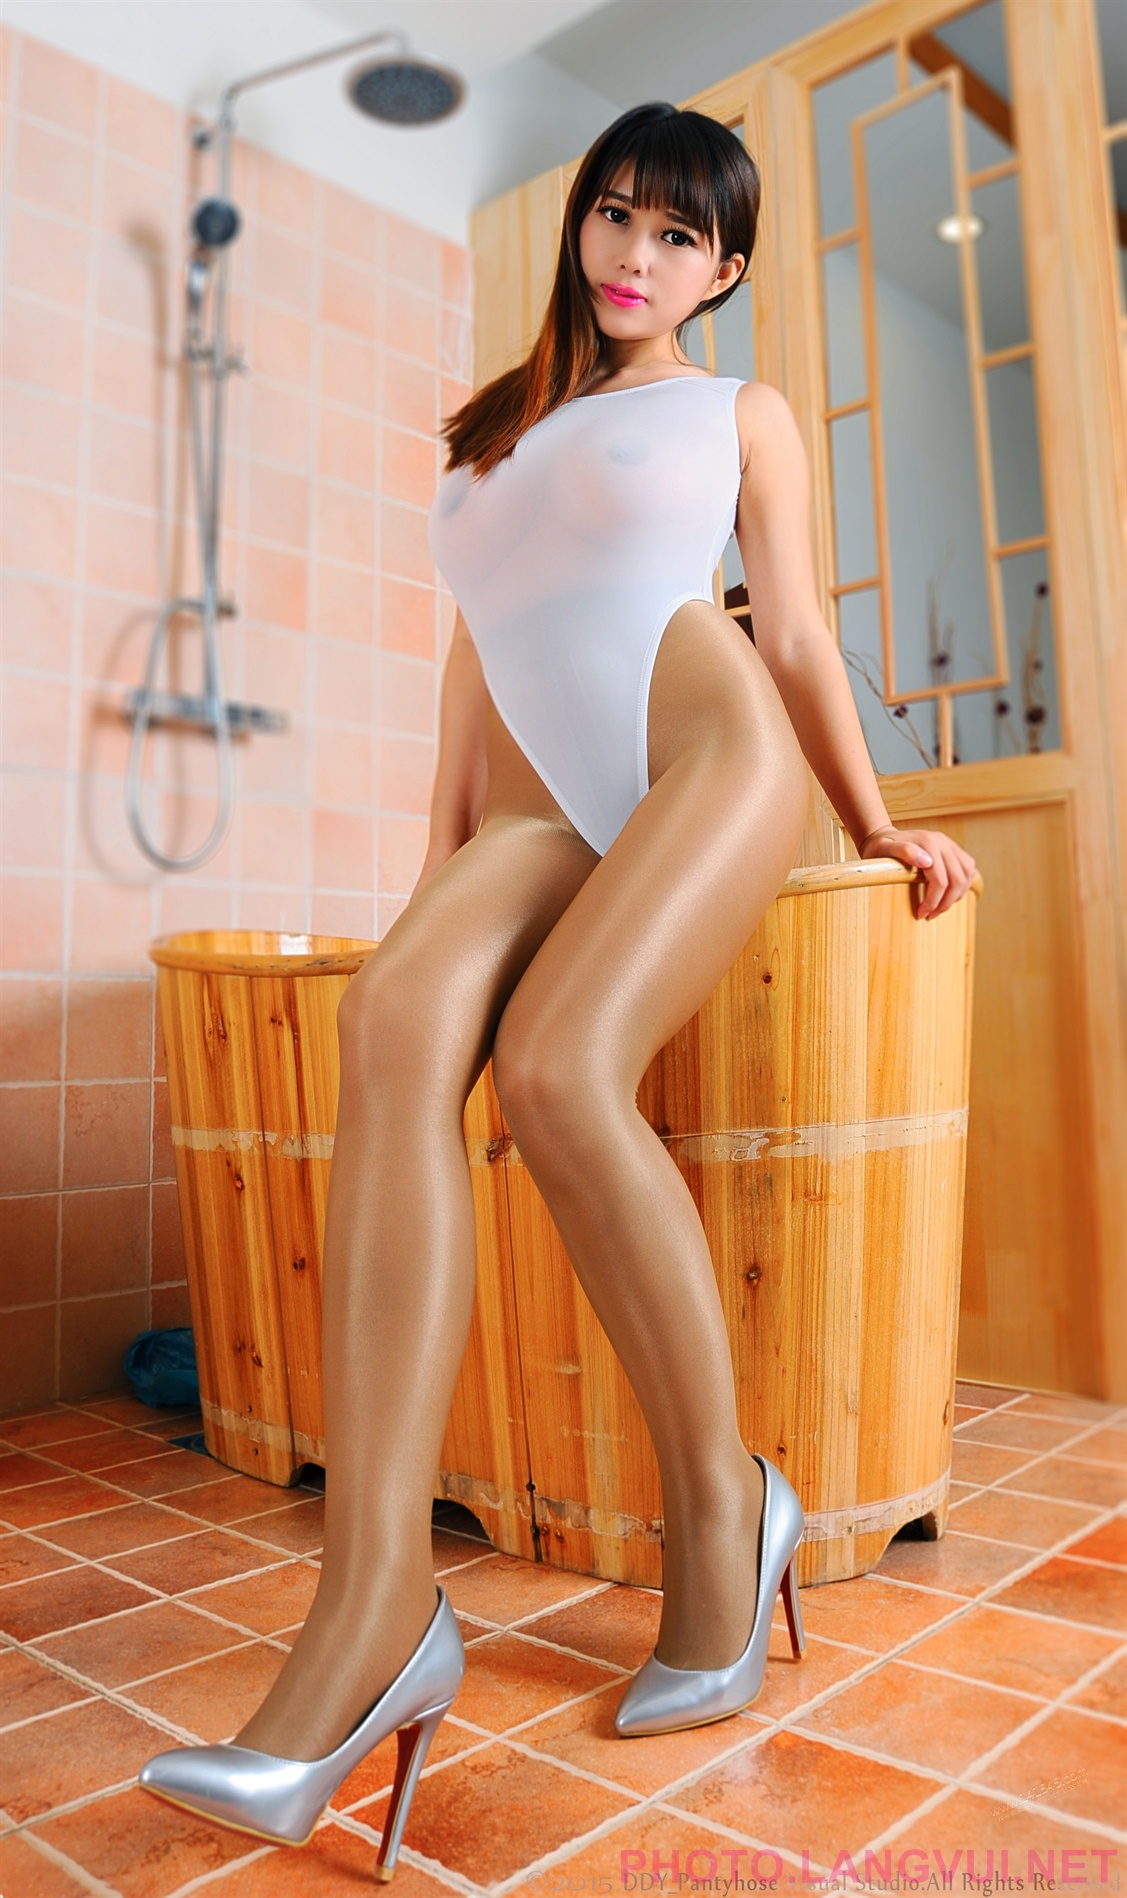 Leotard pantyhose bathroom stockings, jenny heart free porn